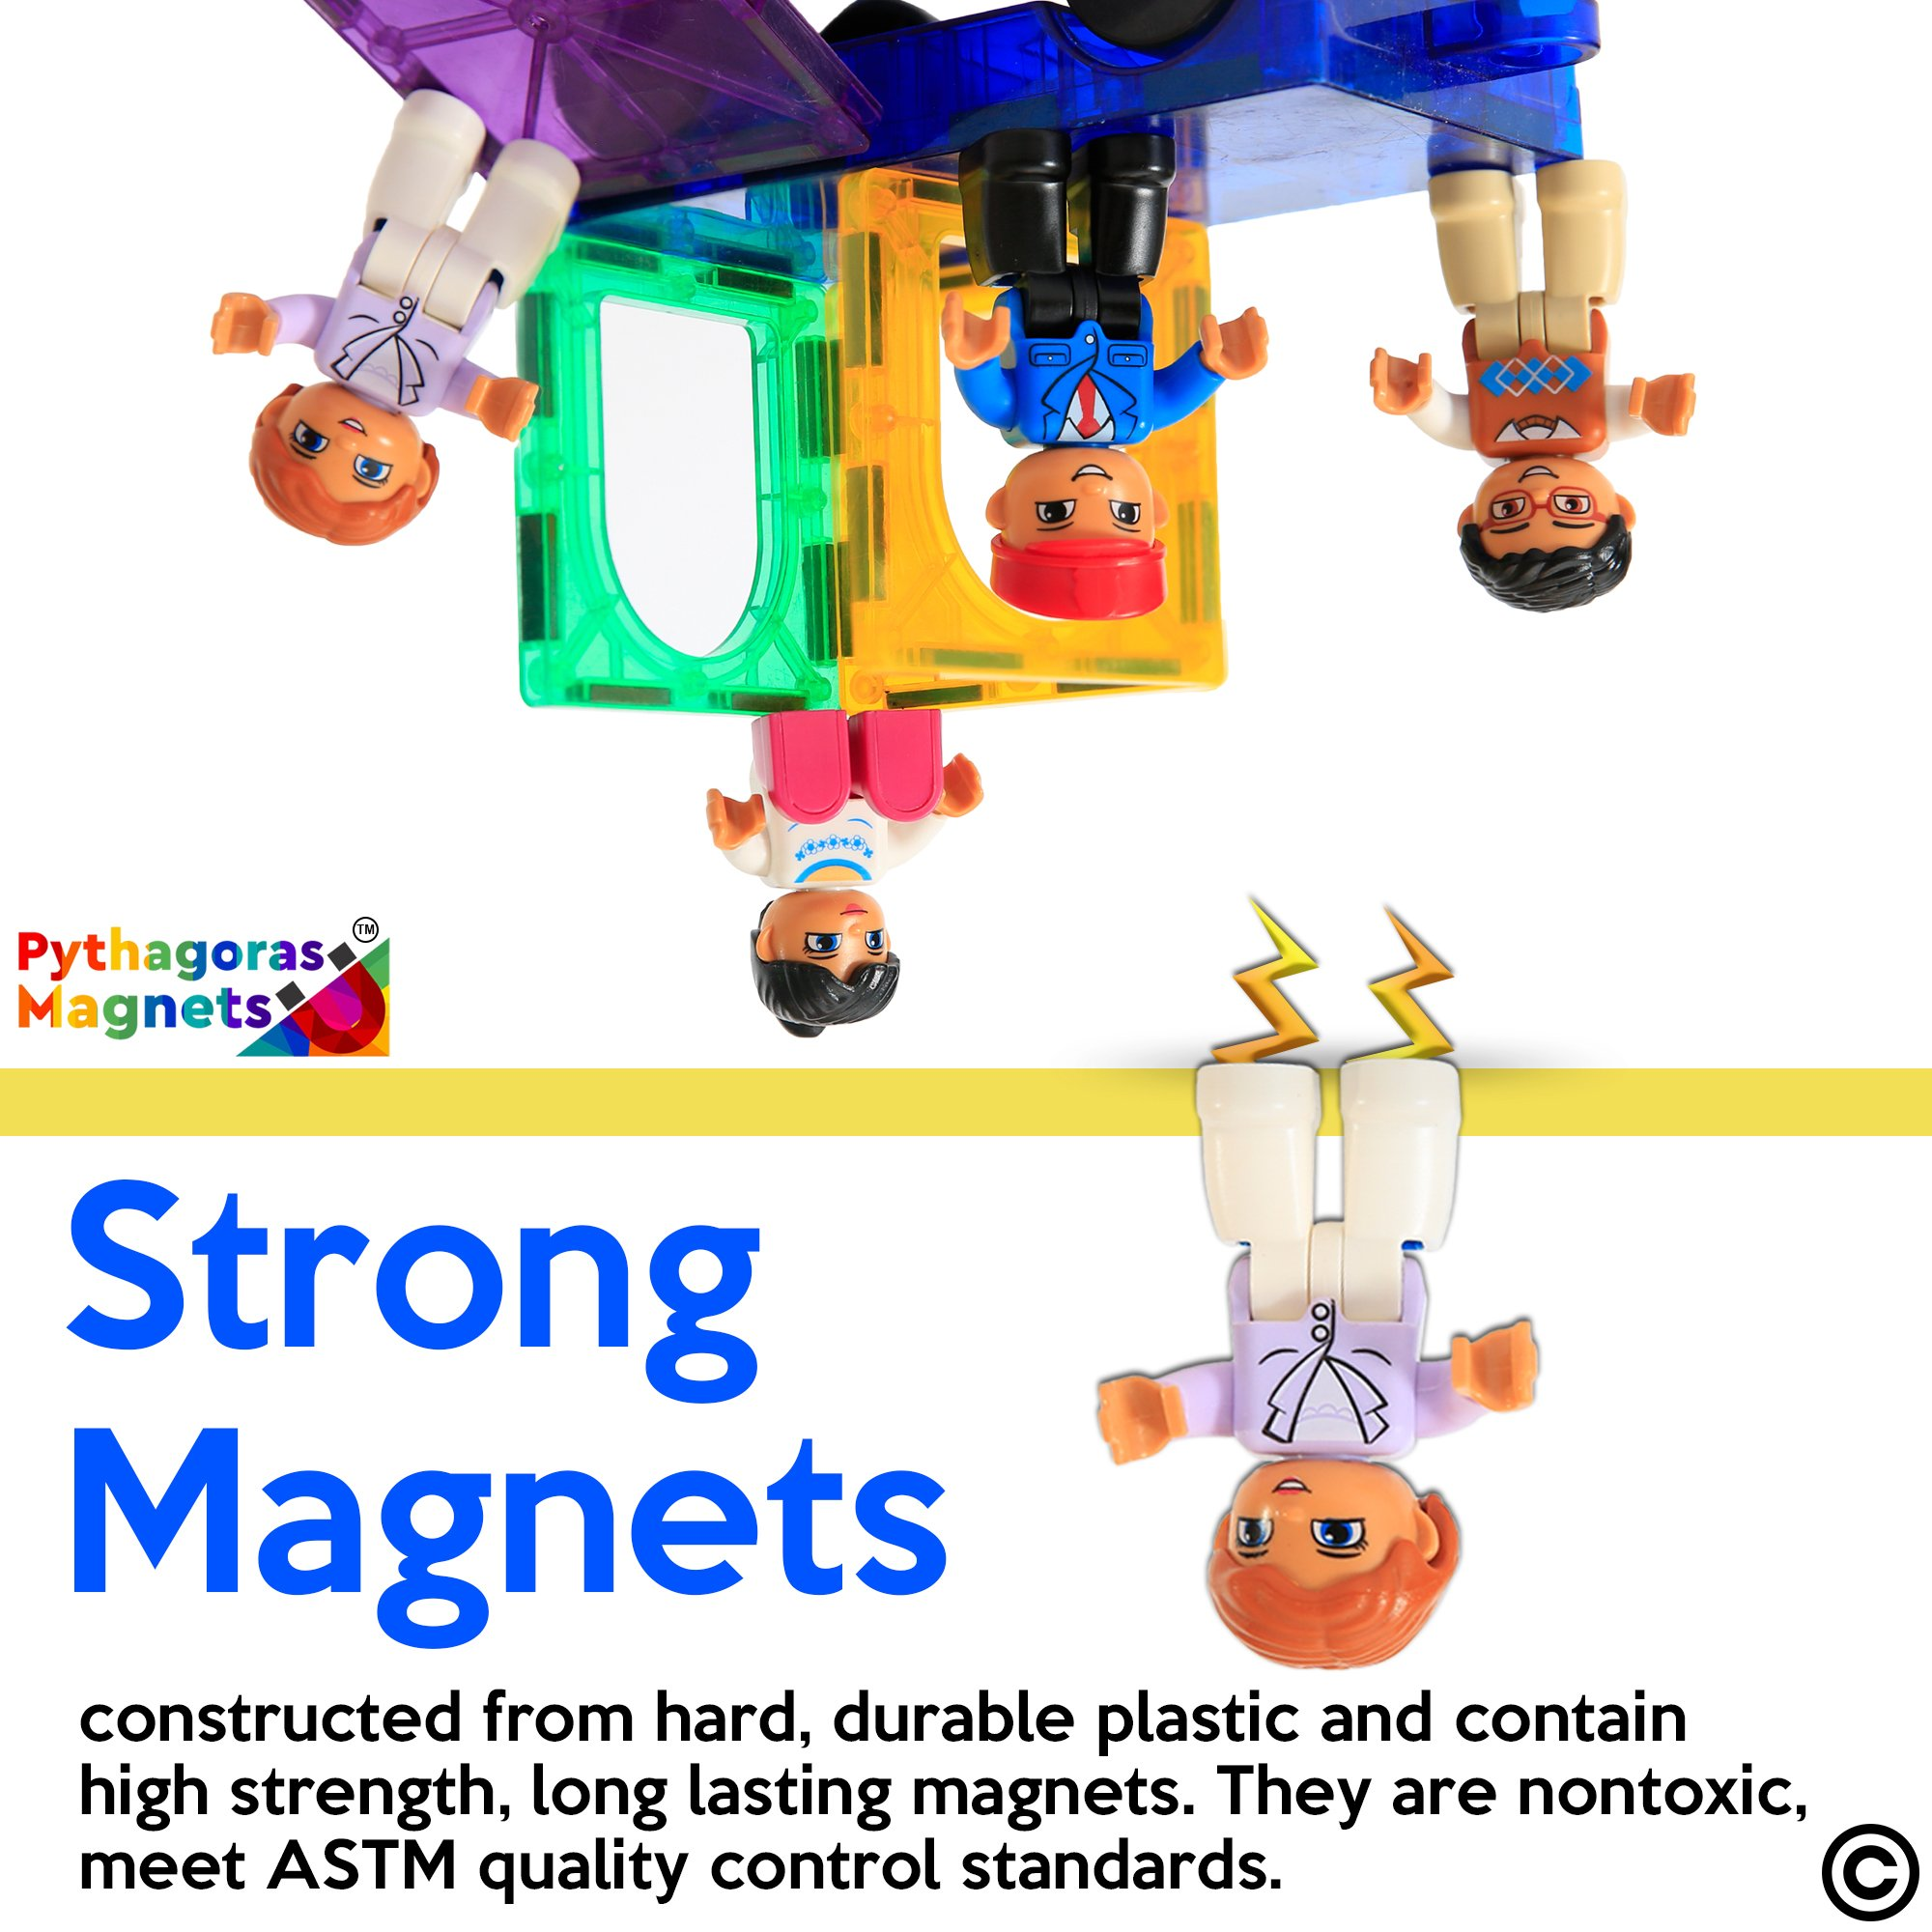 Magnetic Figures Set of 4 - Community Toy People Magnetic Tiles Expansion Pack for Boys and Girls - Pilot, Teacher, Lawyer, Coach Educational STEM Toys Add on Sets for Magnetic Blocks by Pythagoras Magnets (Image #2)